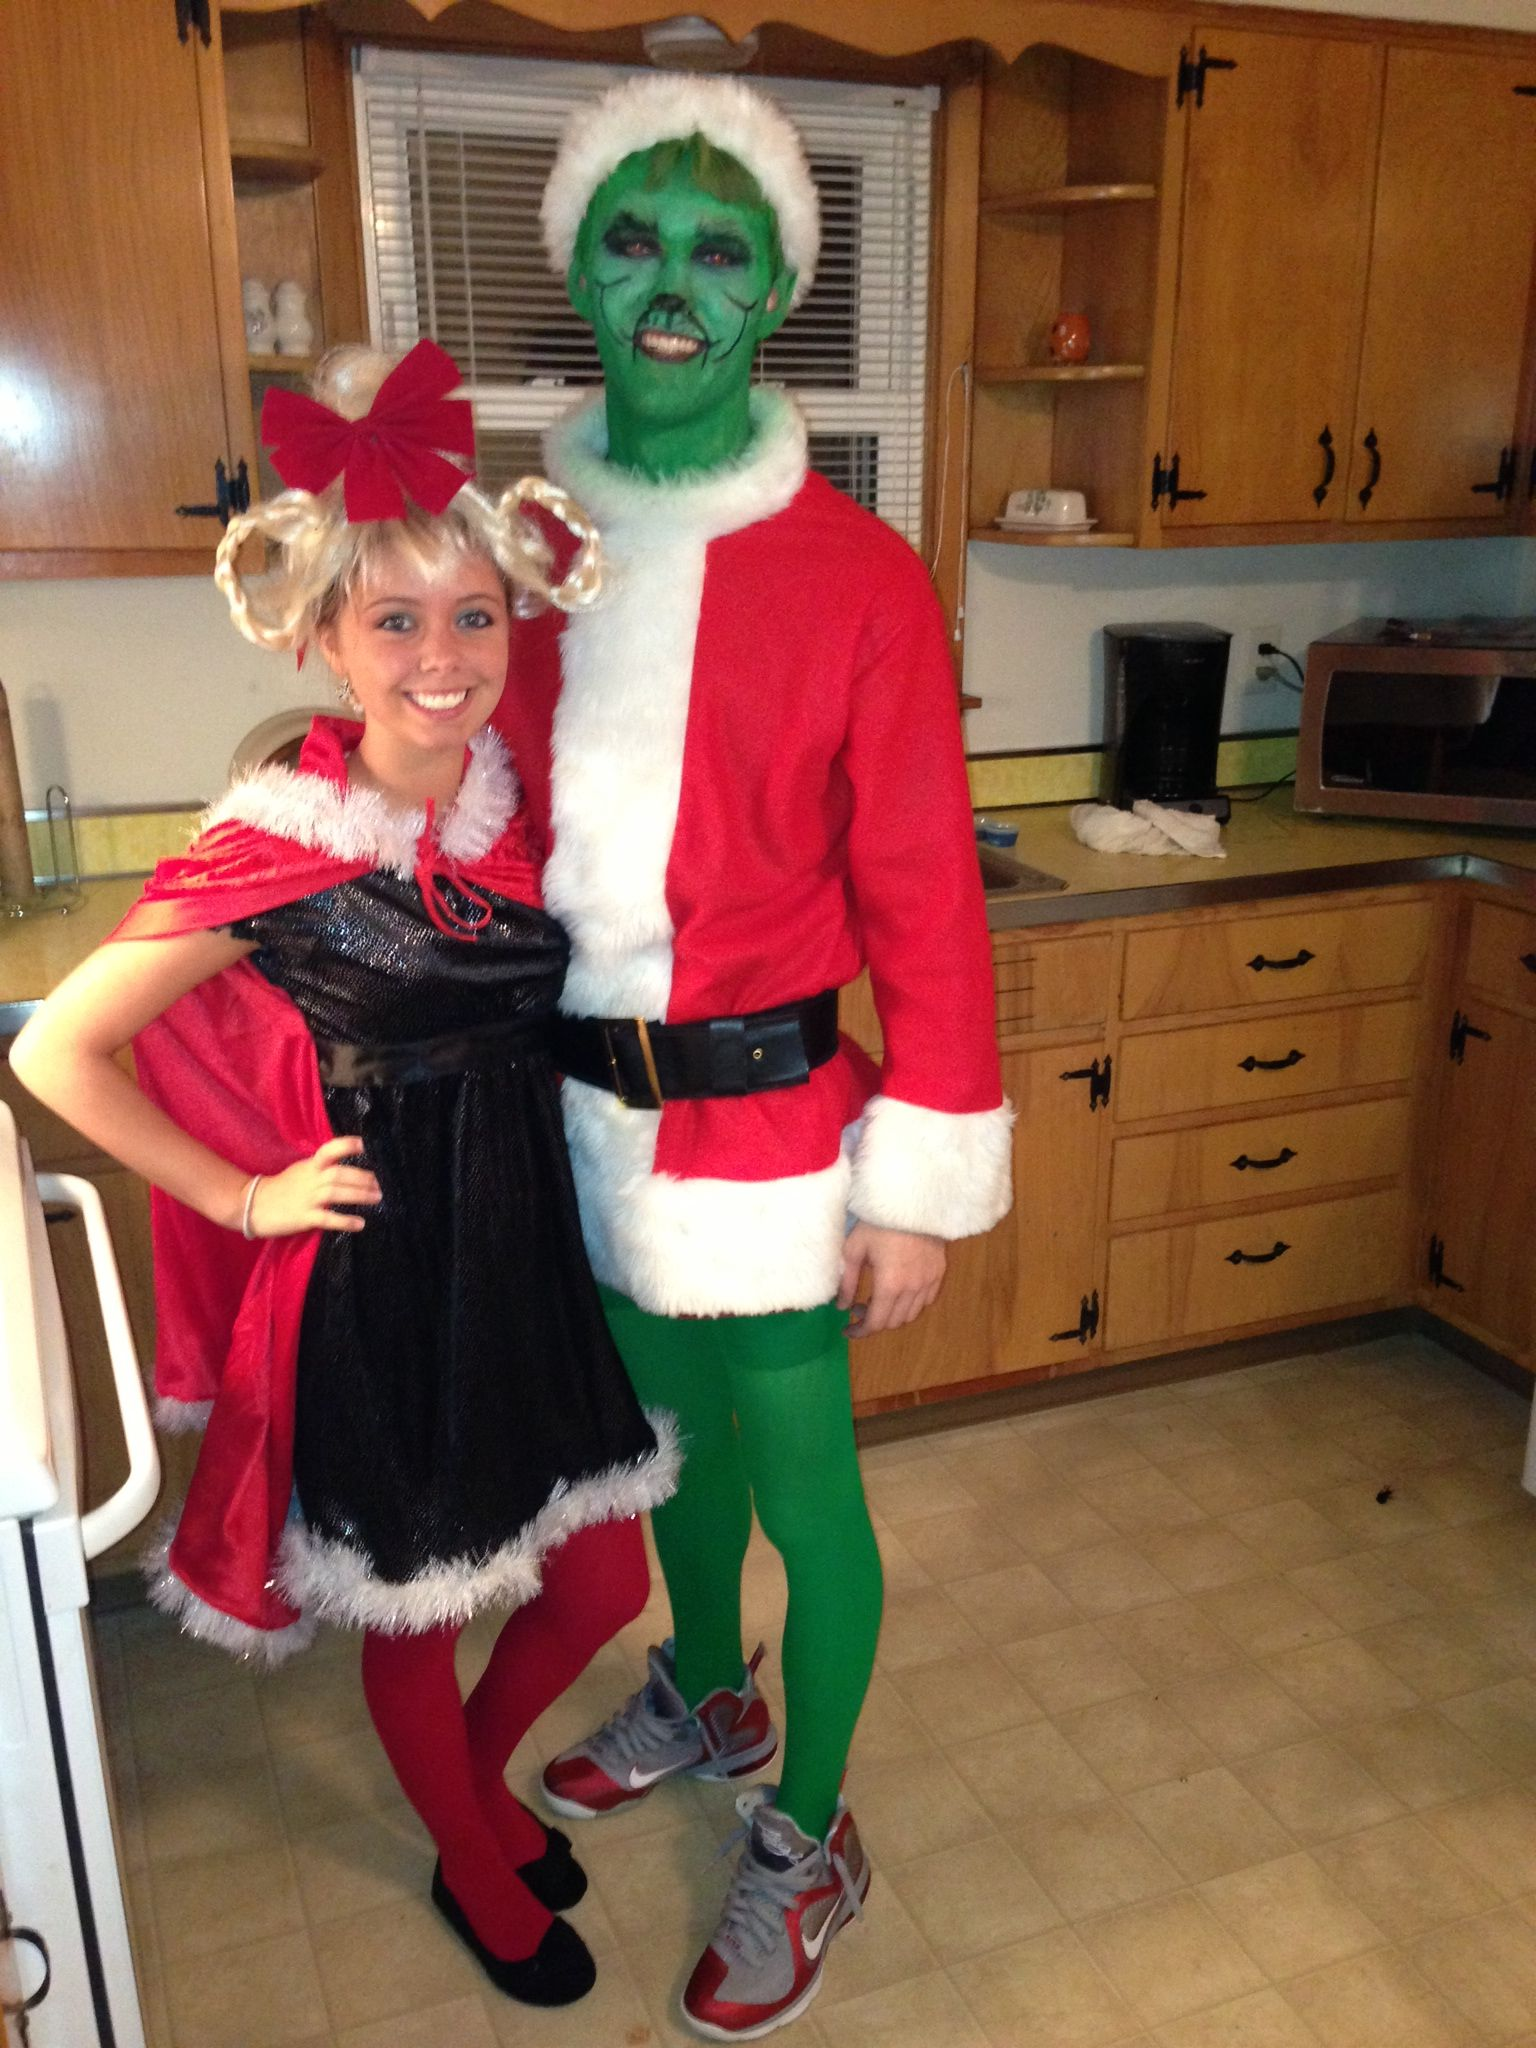 Cindy and the grinch costume | Holidays! | Pinterest ...